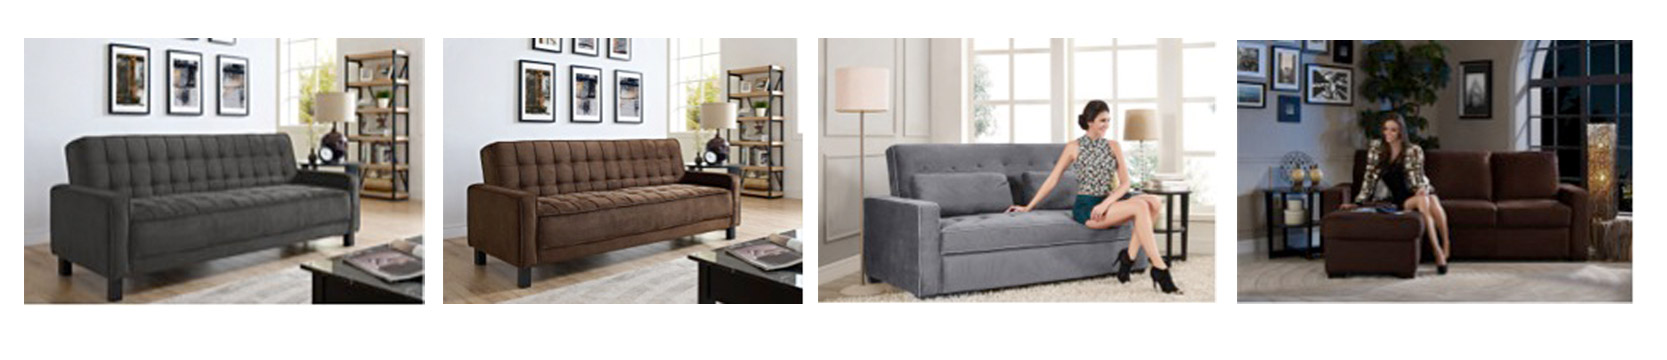 Double Futon Size Modern Sofabeds